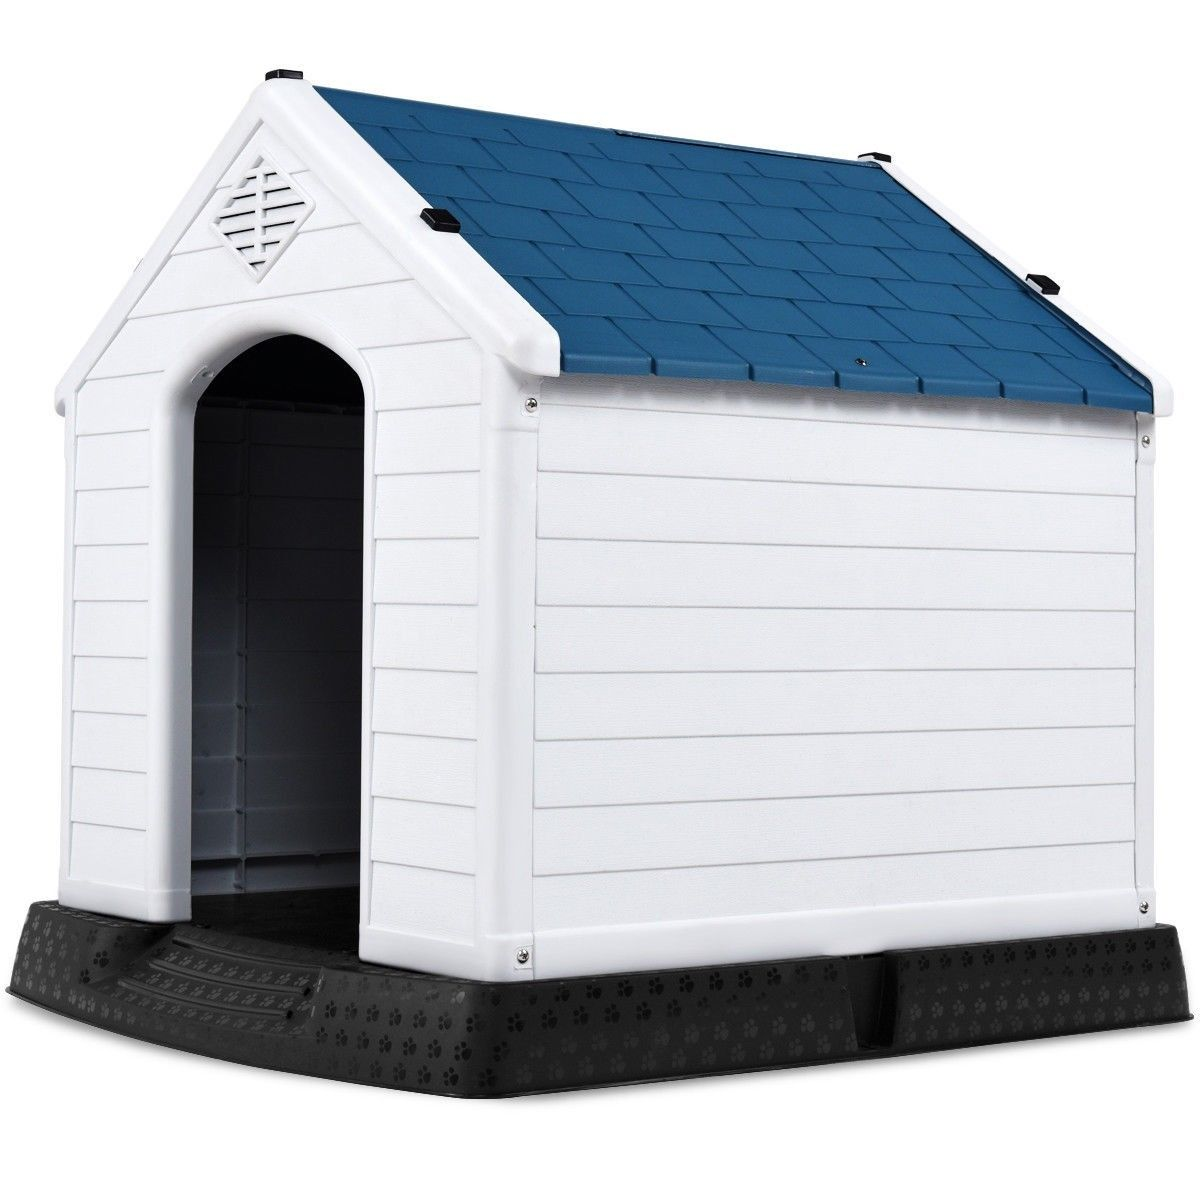 Waterproof Dog Cat Kennel Puppy House Outdoor Pet Shelter Up to 80lb